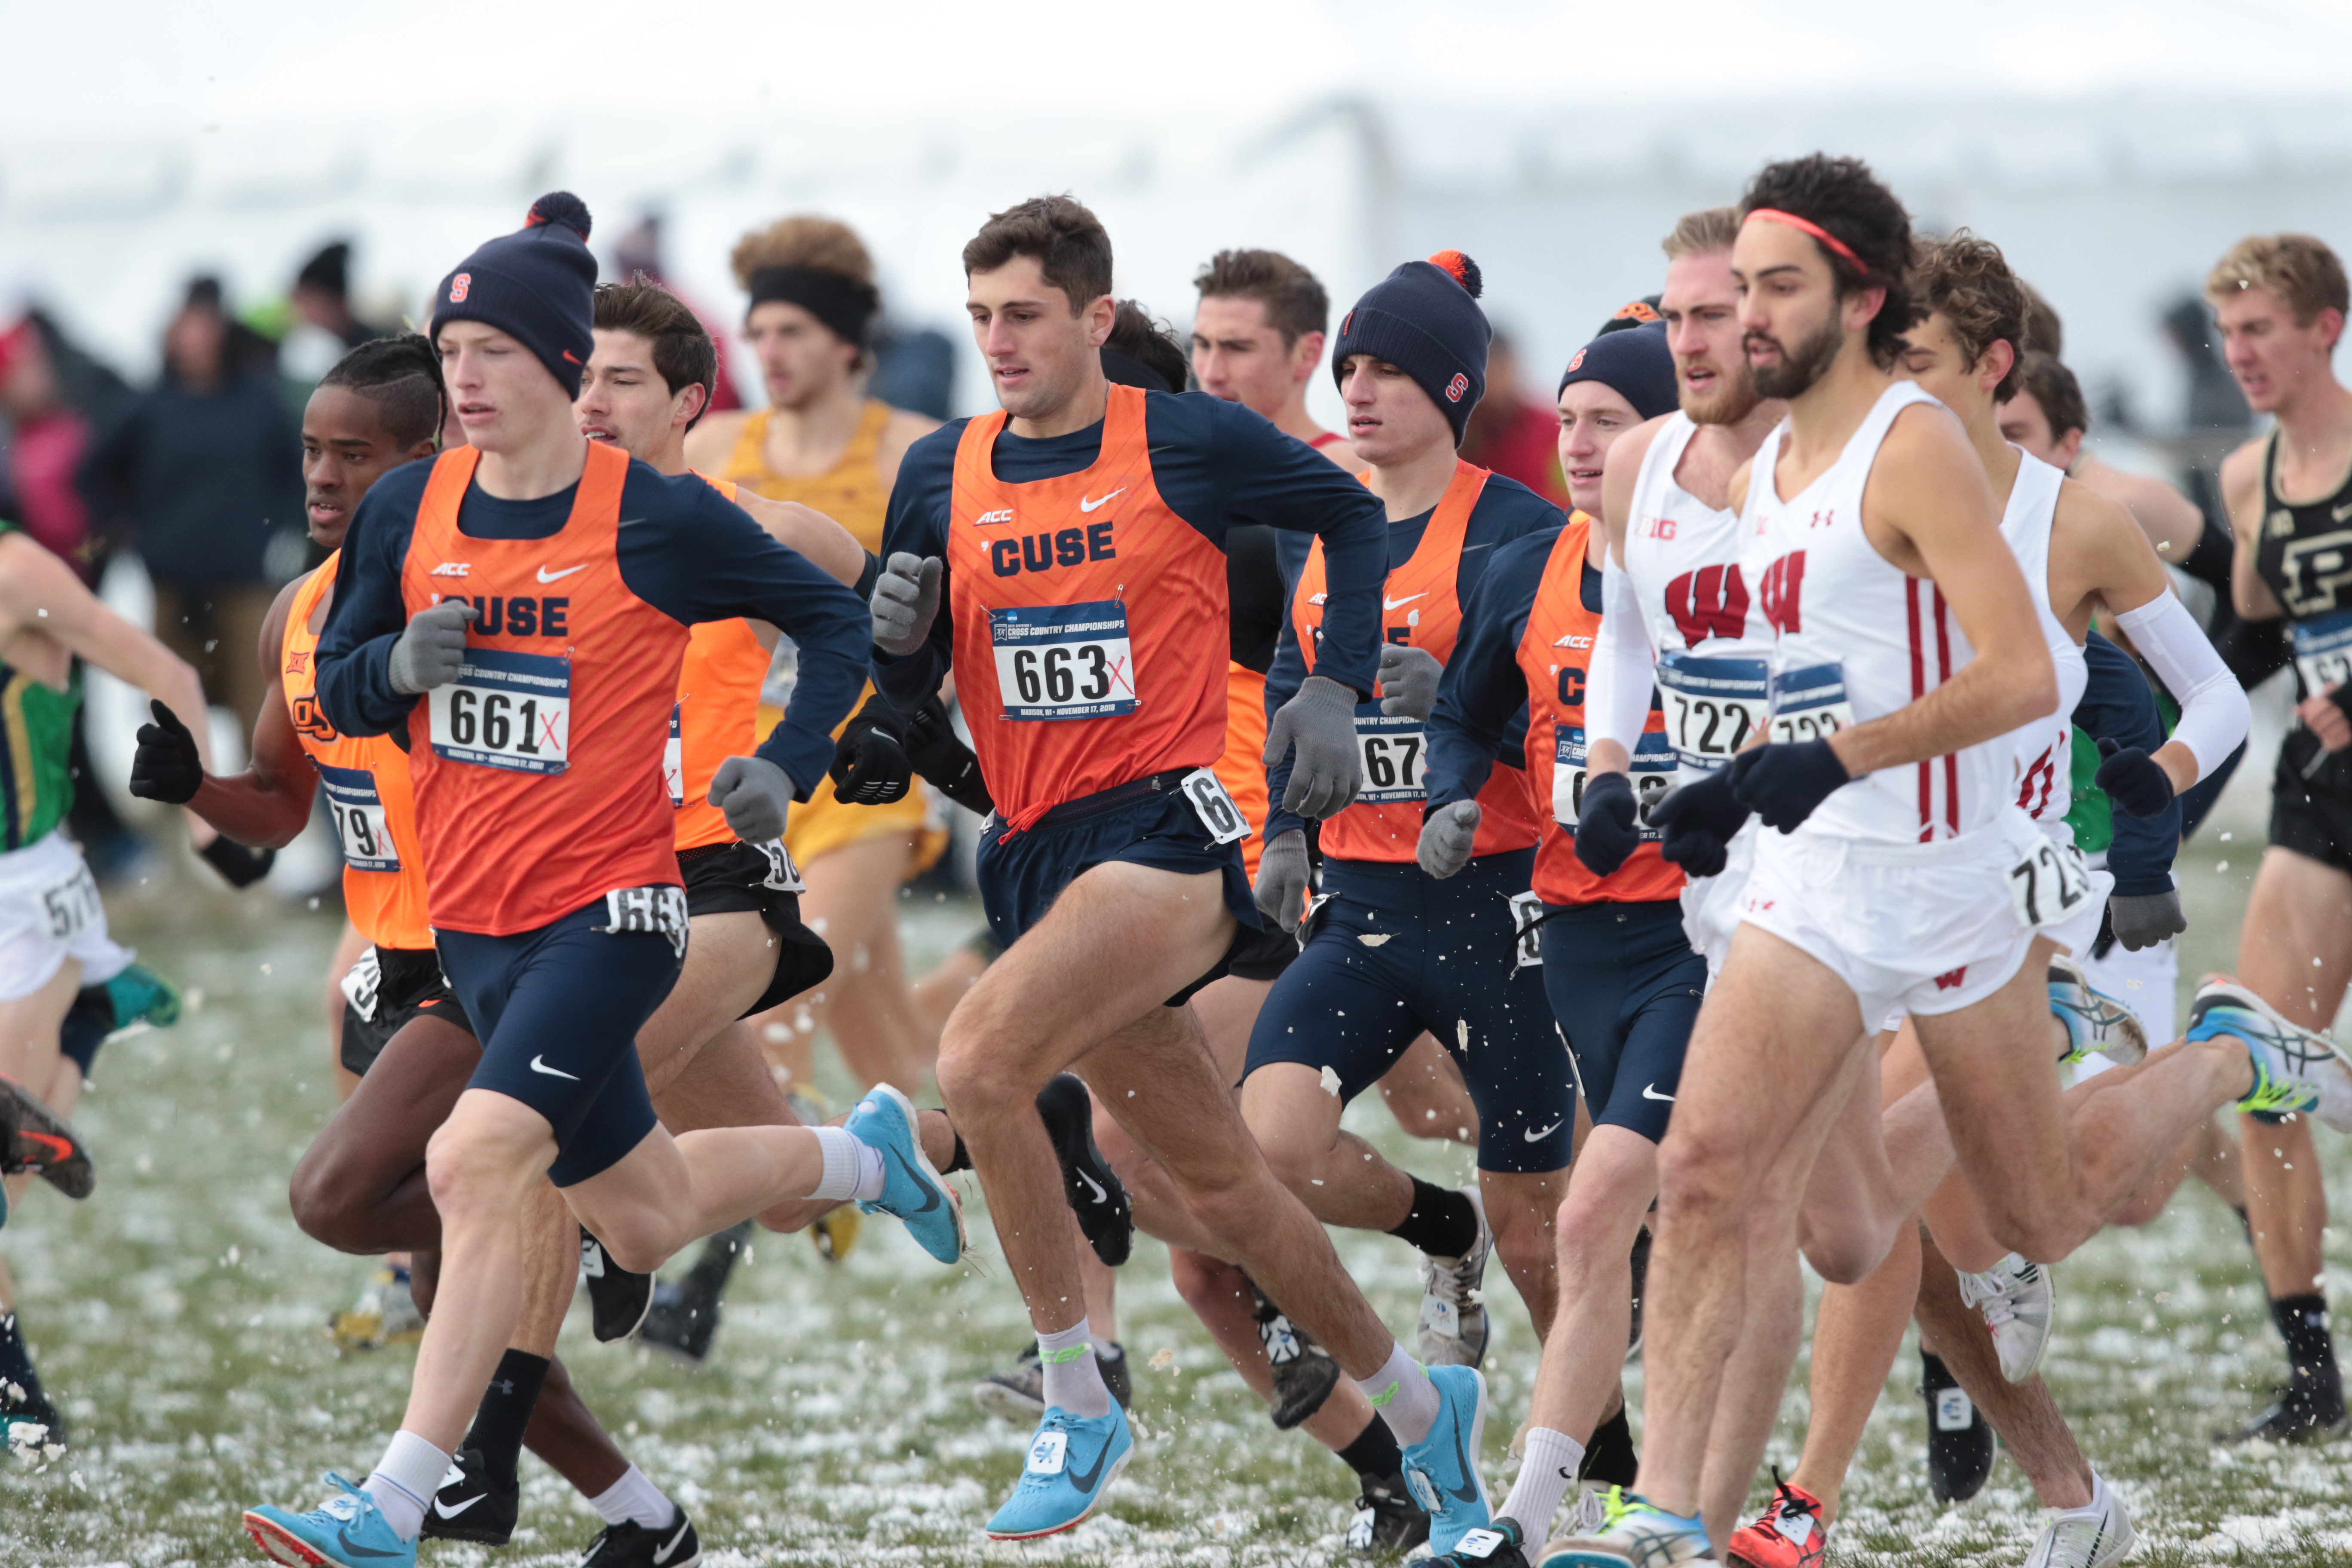 2018 NCAA Division I Men's and Women's Cross Country Championship